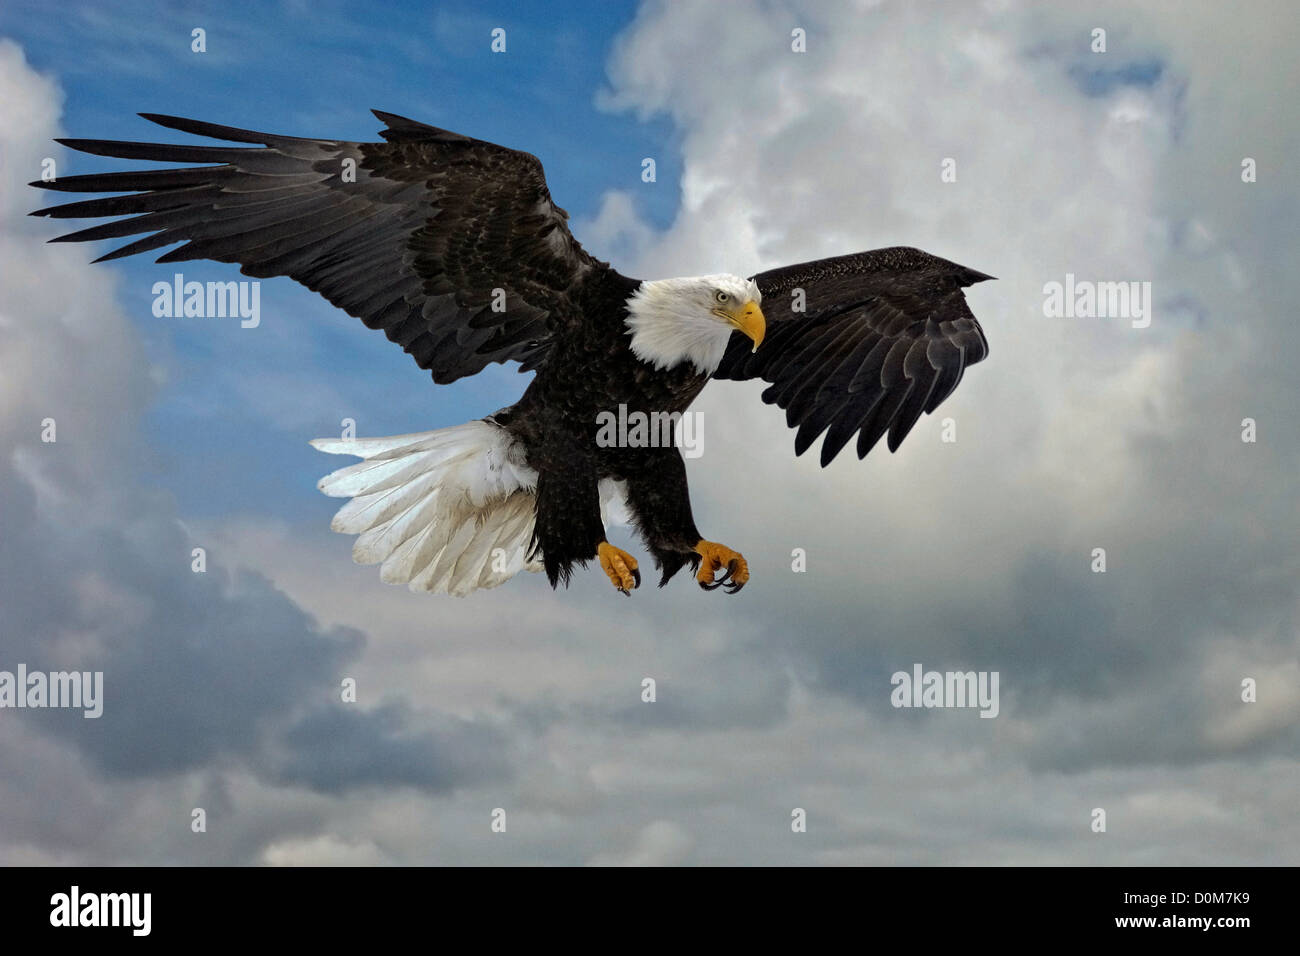 With outstretched wings and talons during flight, a Bald Eagle prepares to swoop down on prey. - Stock Image